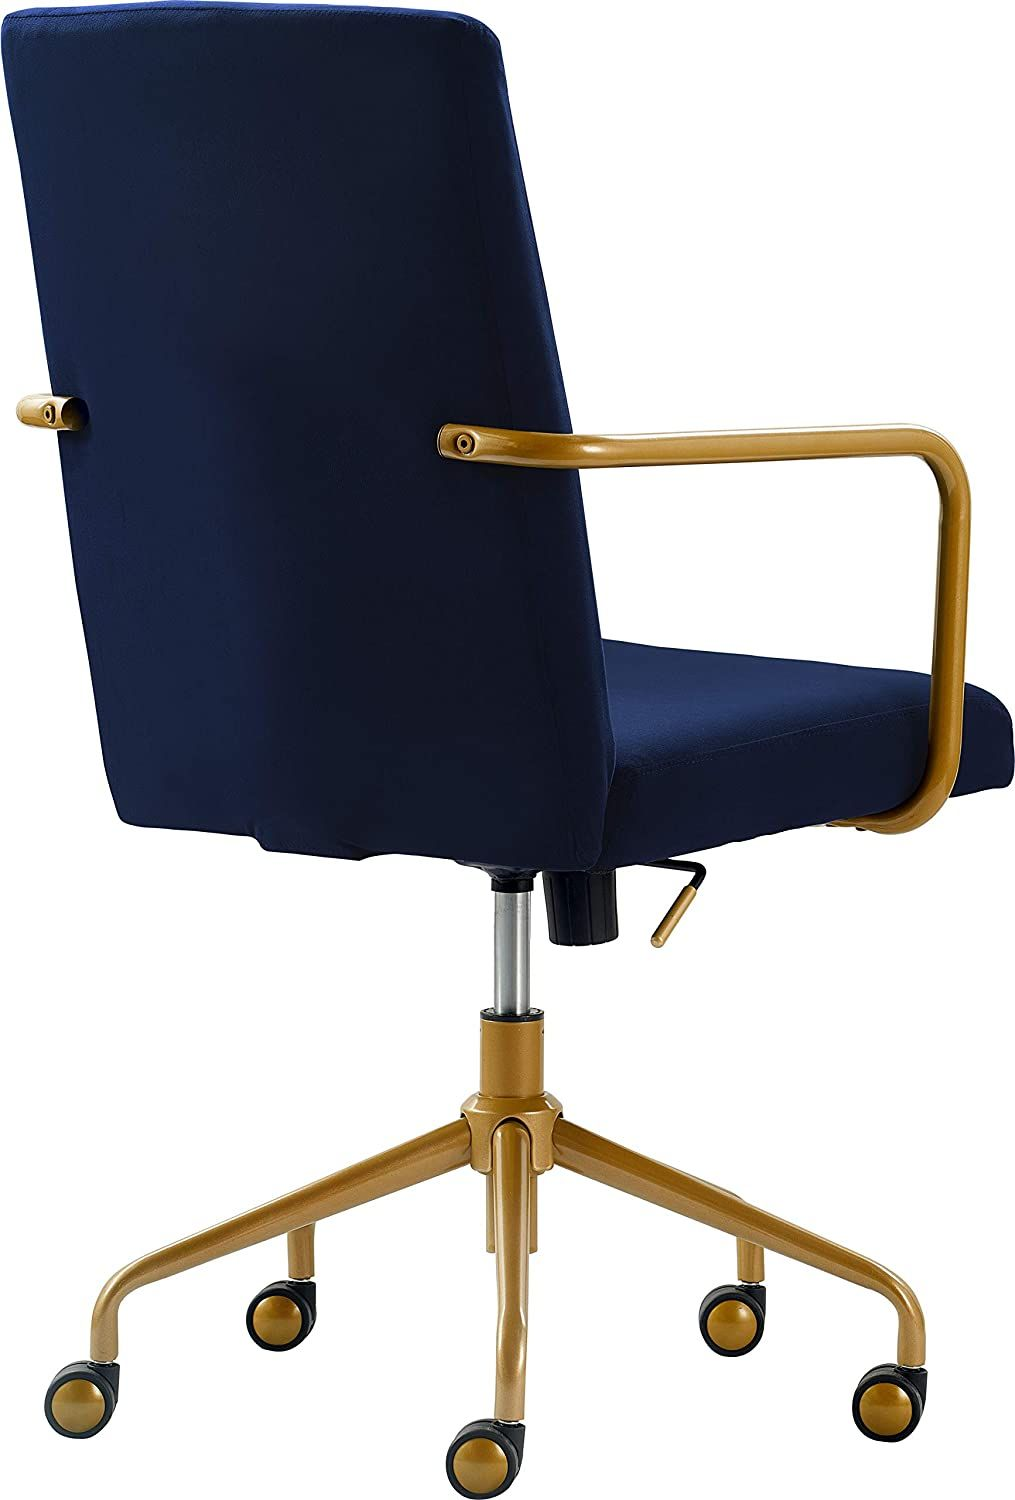 Giselle Modern Home Office Desk Chair High Back Adjustable Computer Chair With Gold Arms Base And In 2021 Modern Home Office Desk Home Office Chairs Office Chair